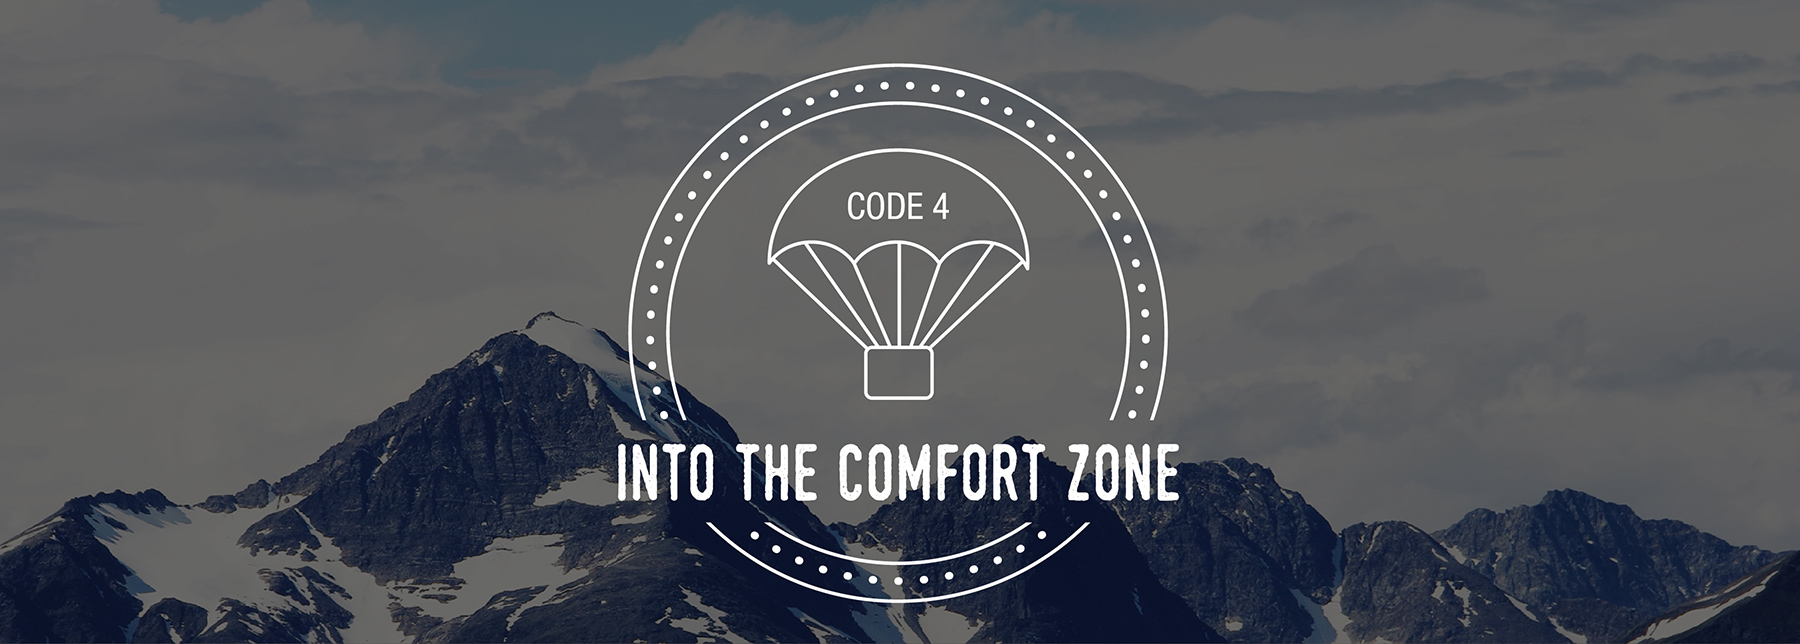 Code 4: Into The Comfort Zone